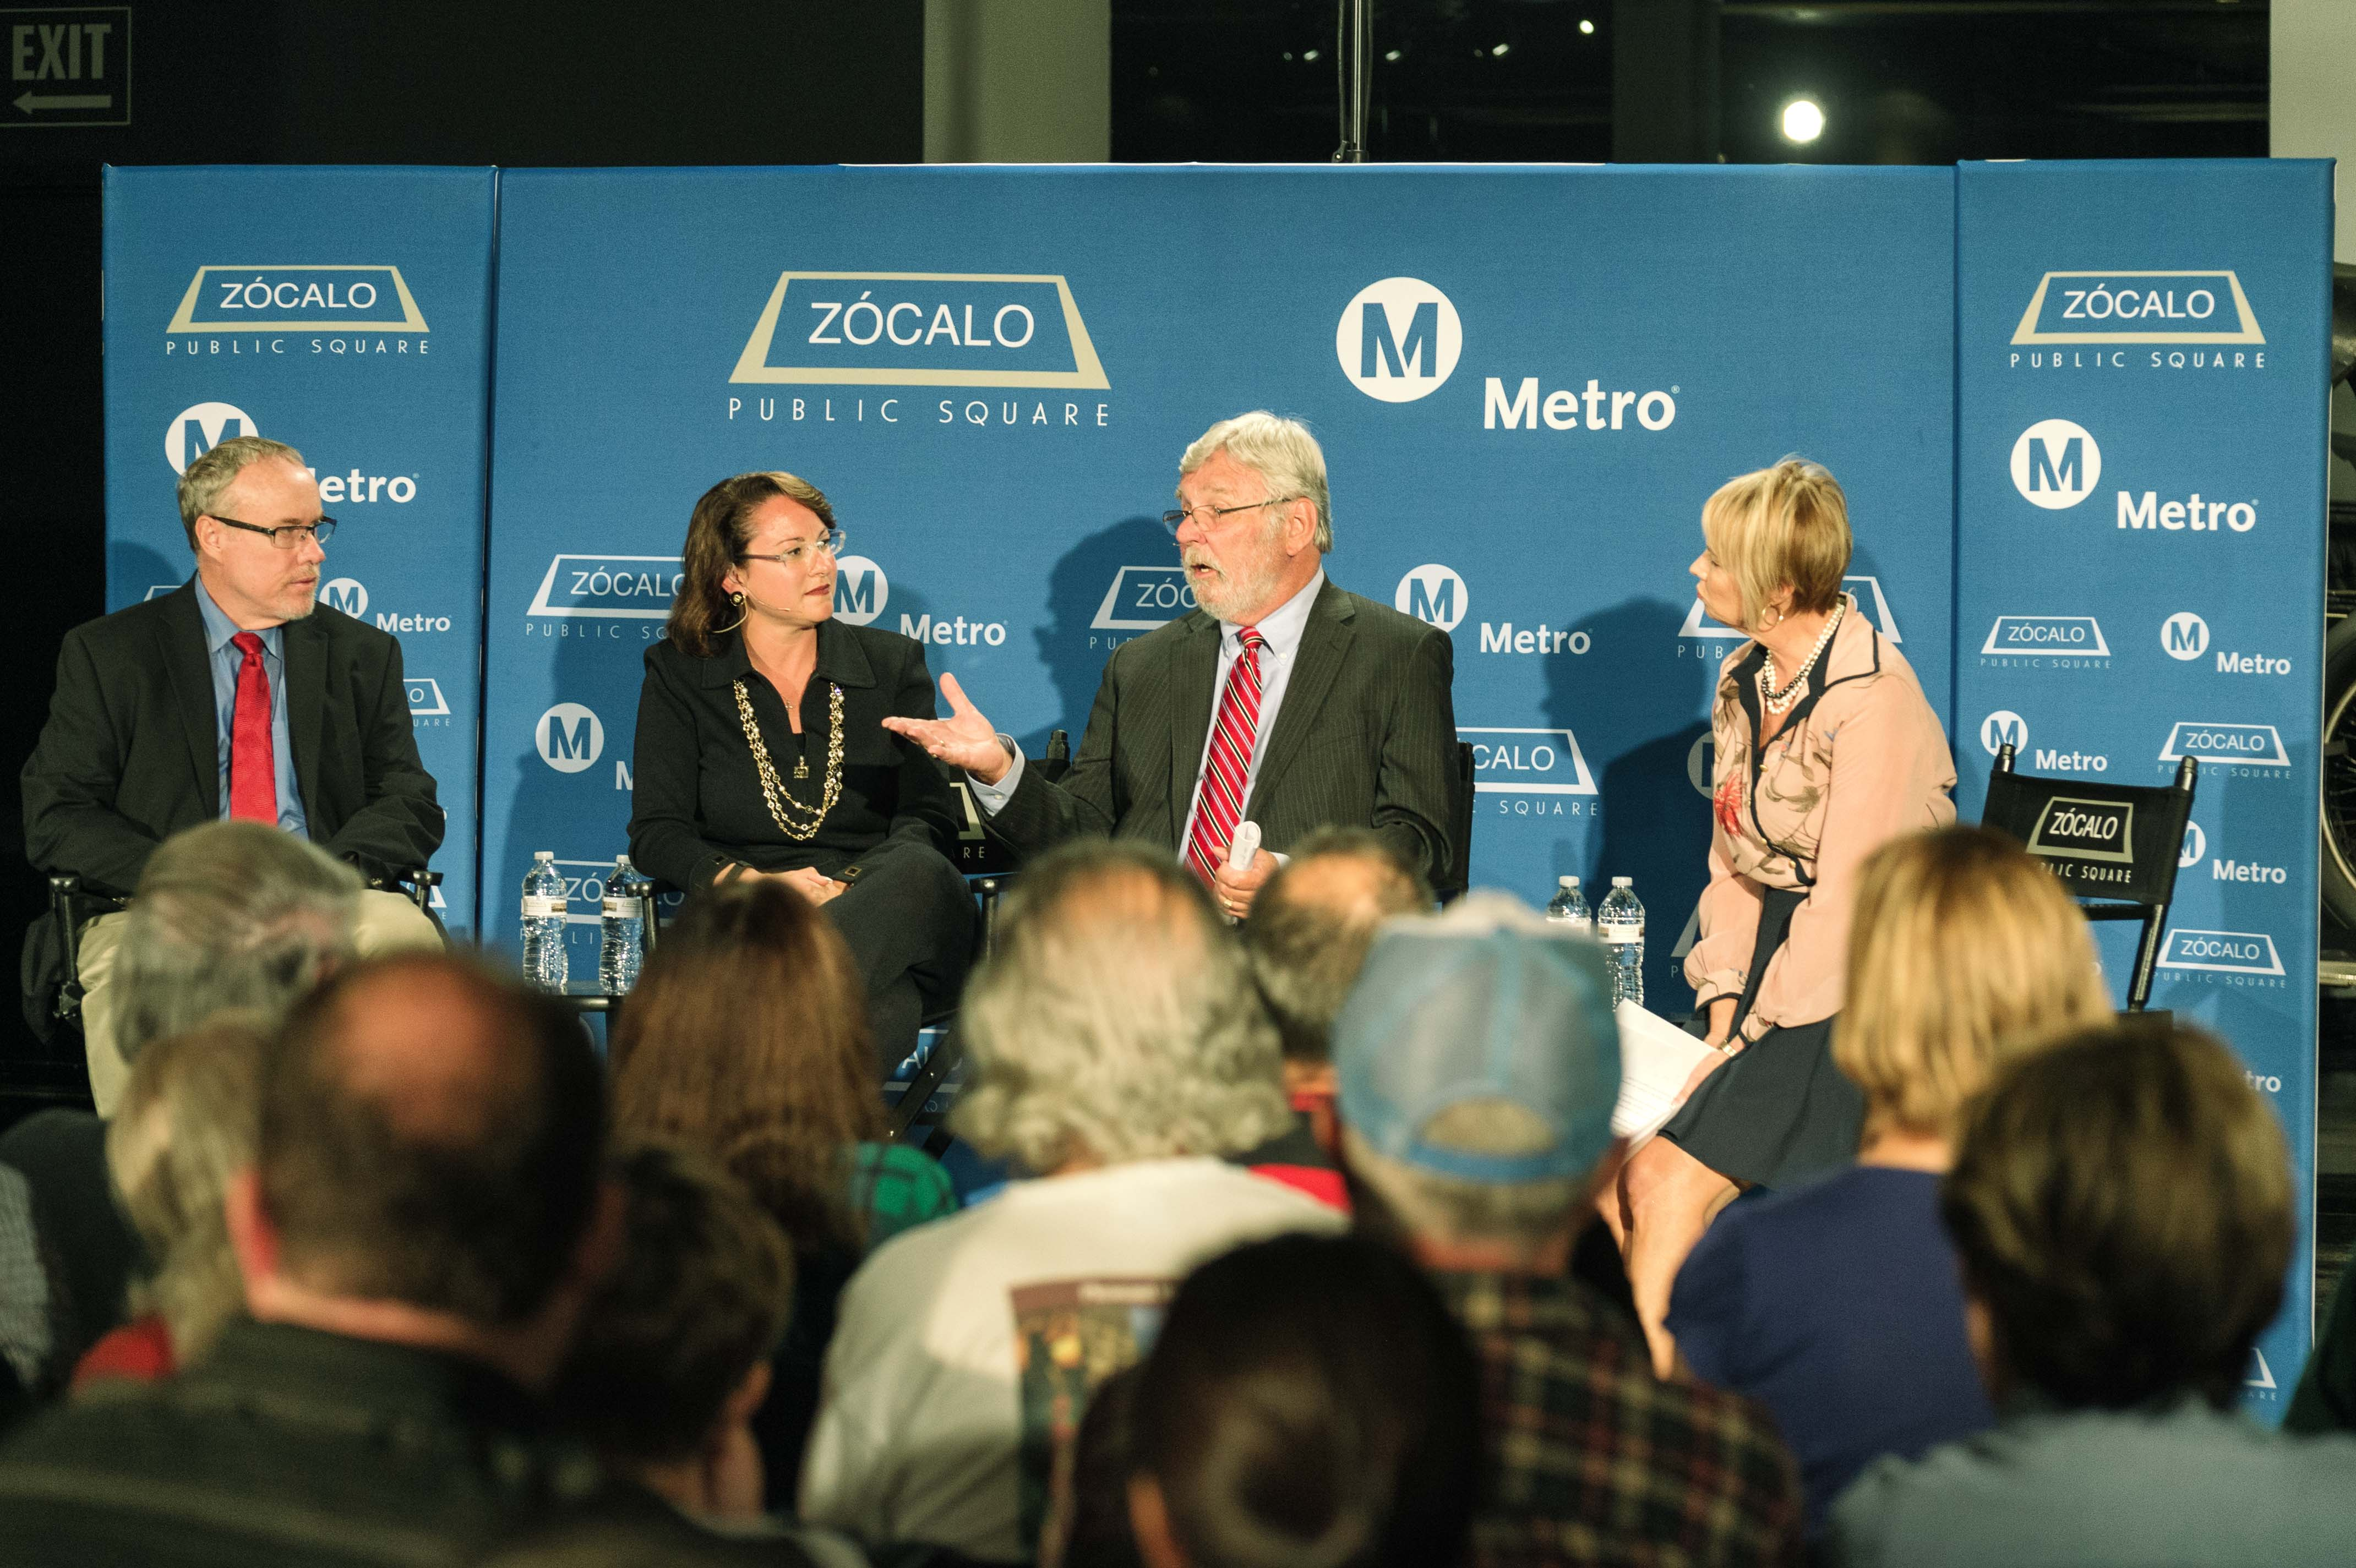 From left, UCLA's Brian Taylor, FAST's Hilary Norton, Metro CEO Art Leahy and KCRW's Kajon Cermac. Photo by Steve Hymon/Metro.